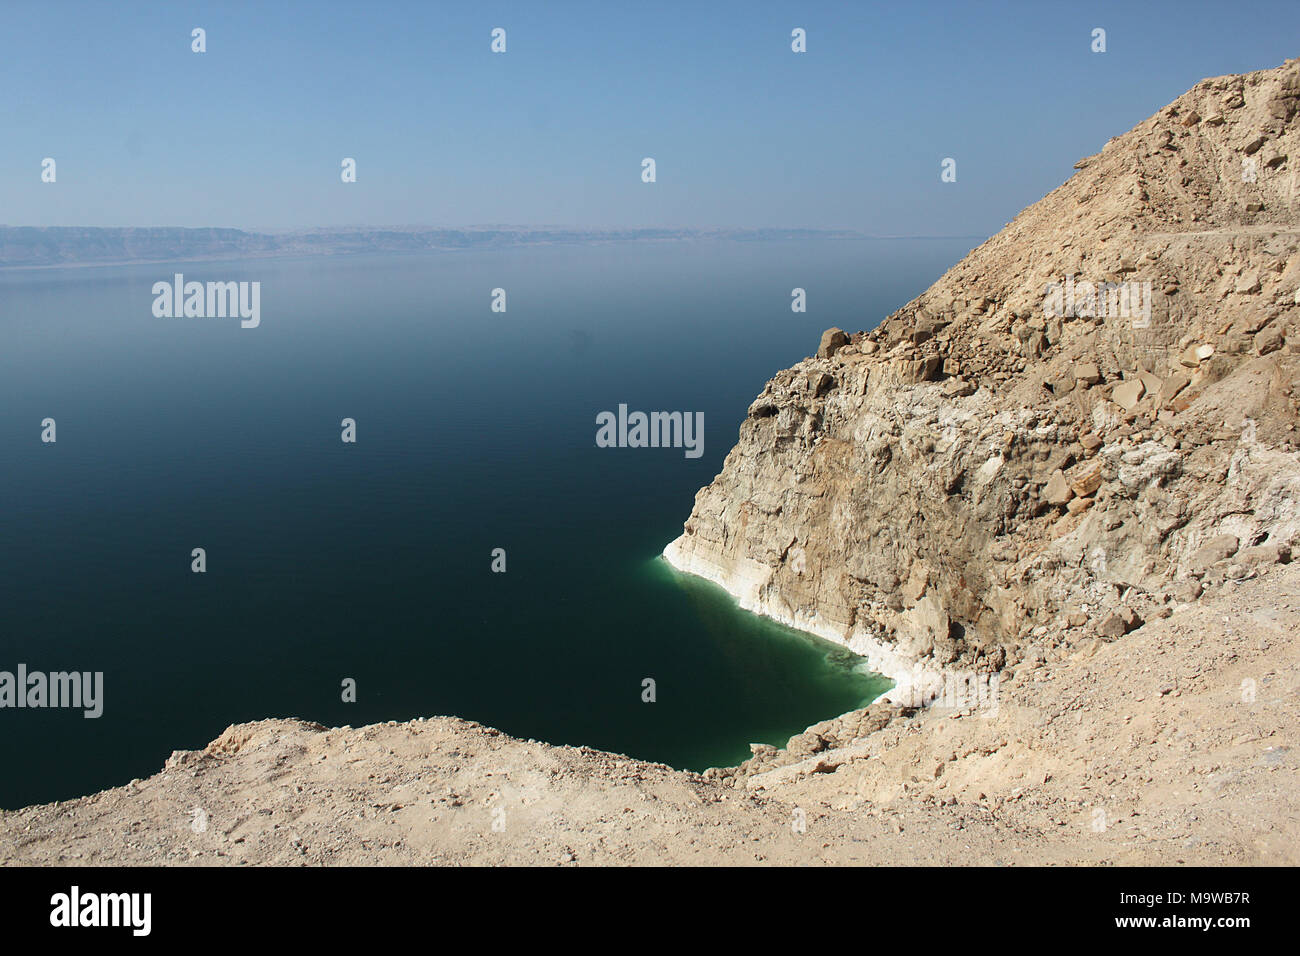 The Dead Sea shore seen from Jordan, with Israel in the distance. At 790 metres below sea level, the valley is one of the lowest land masses on Earth. Stock Photo